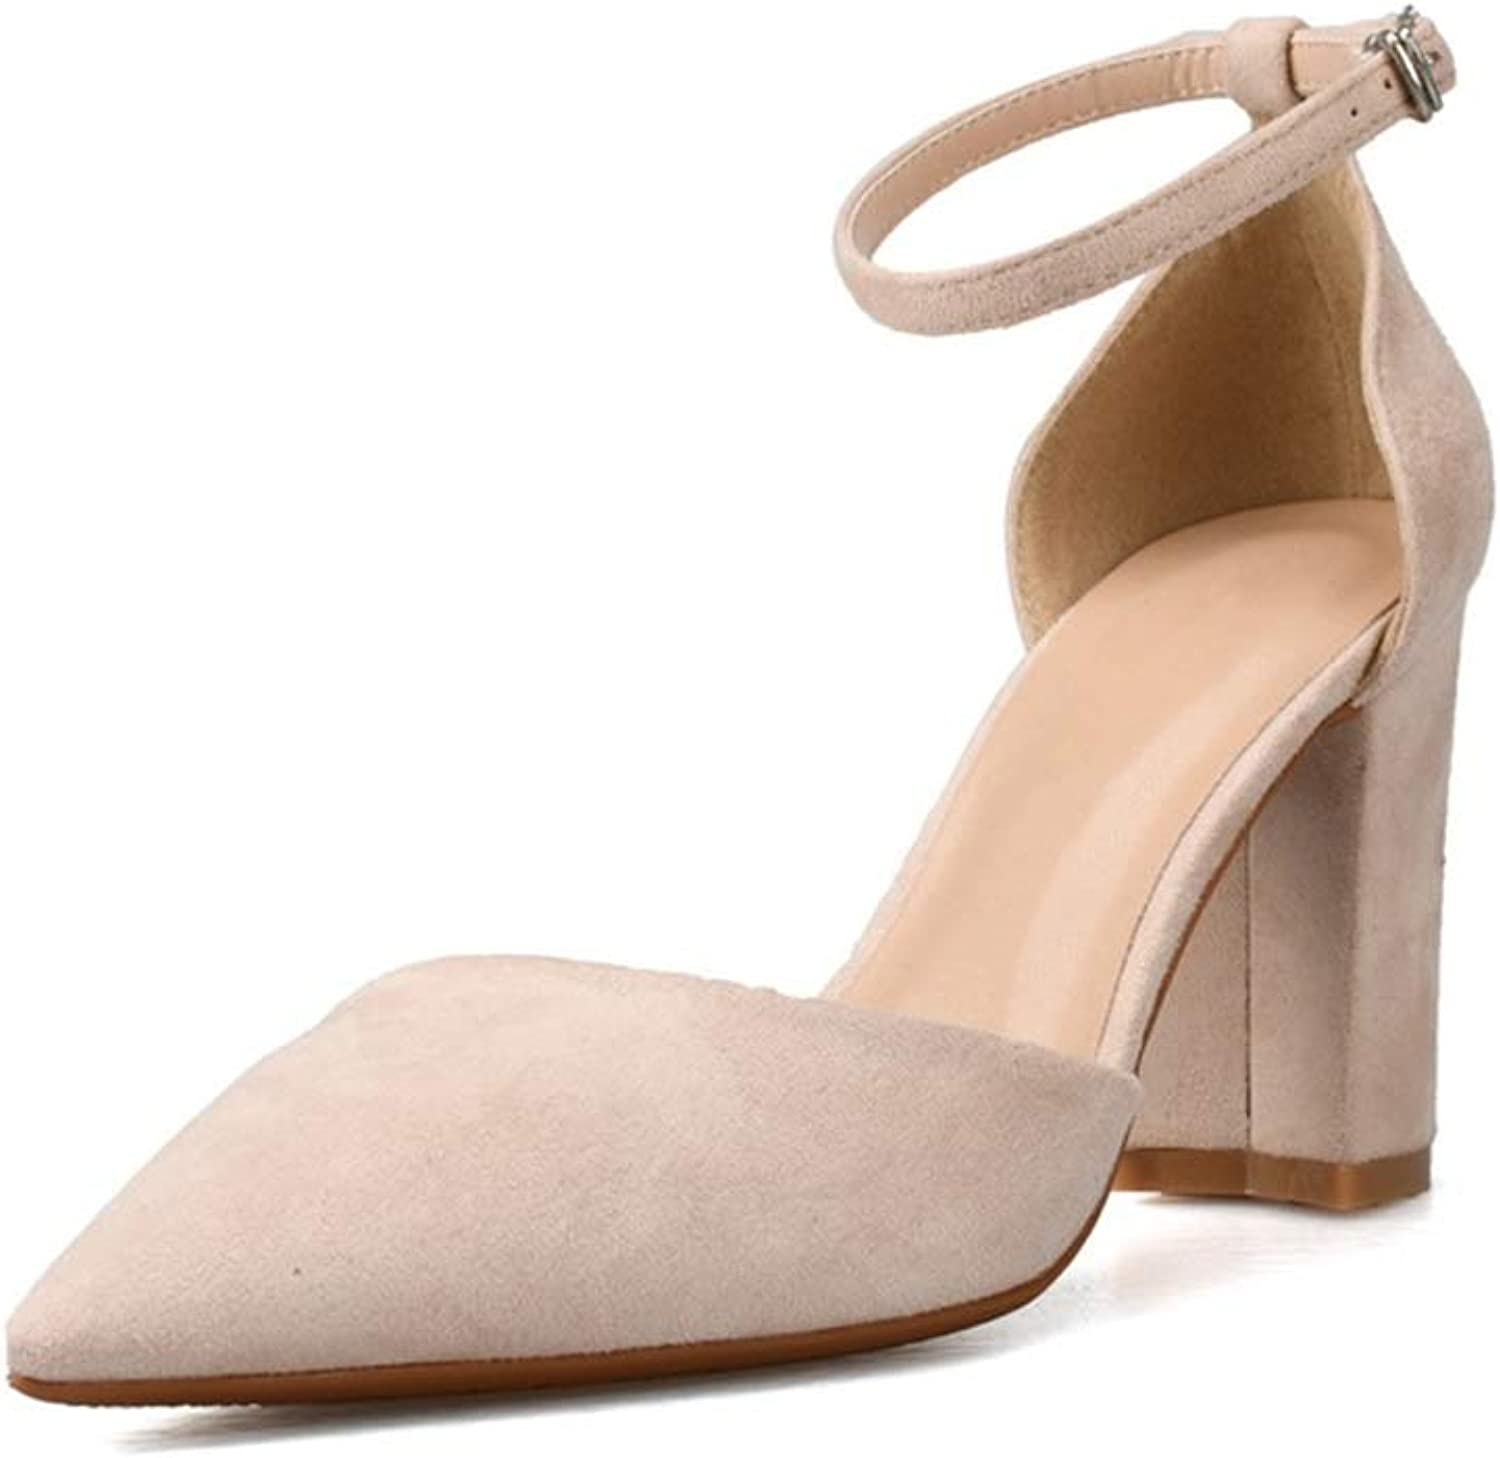 shoes Fashion Ankle Strap Sandals for Women High Block Heel Pointed Toe Pumps for Ladies Faux Suede Upper Dress Sandal Comfortable